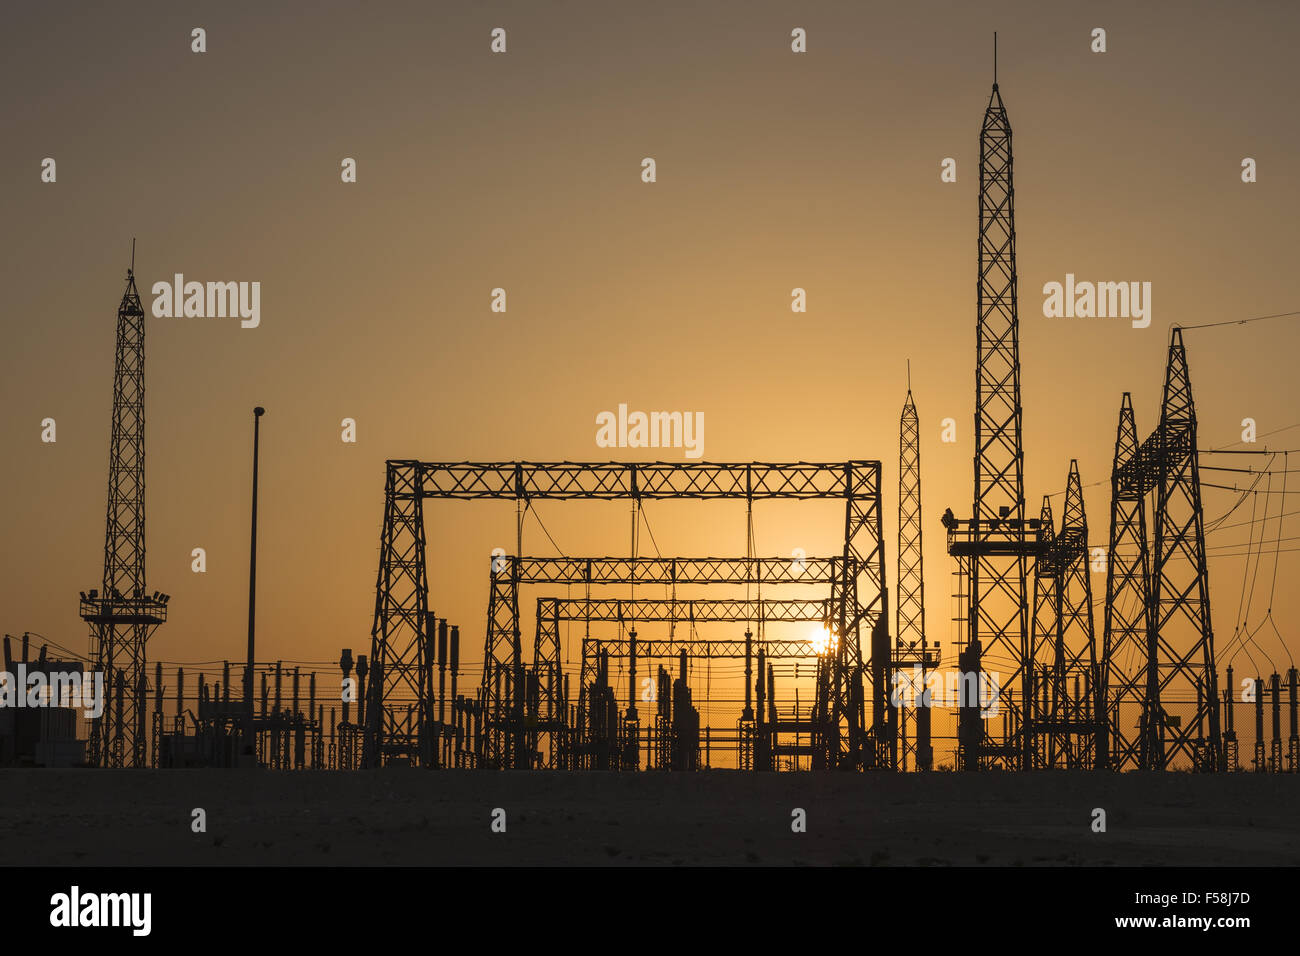 A sunrise photo through sand in the air. Photo of a power sub-station in Bahrain, Middle East. - Stock Image